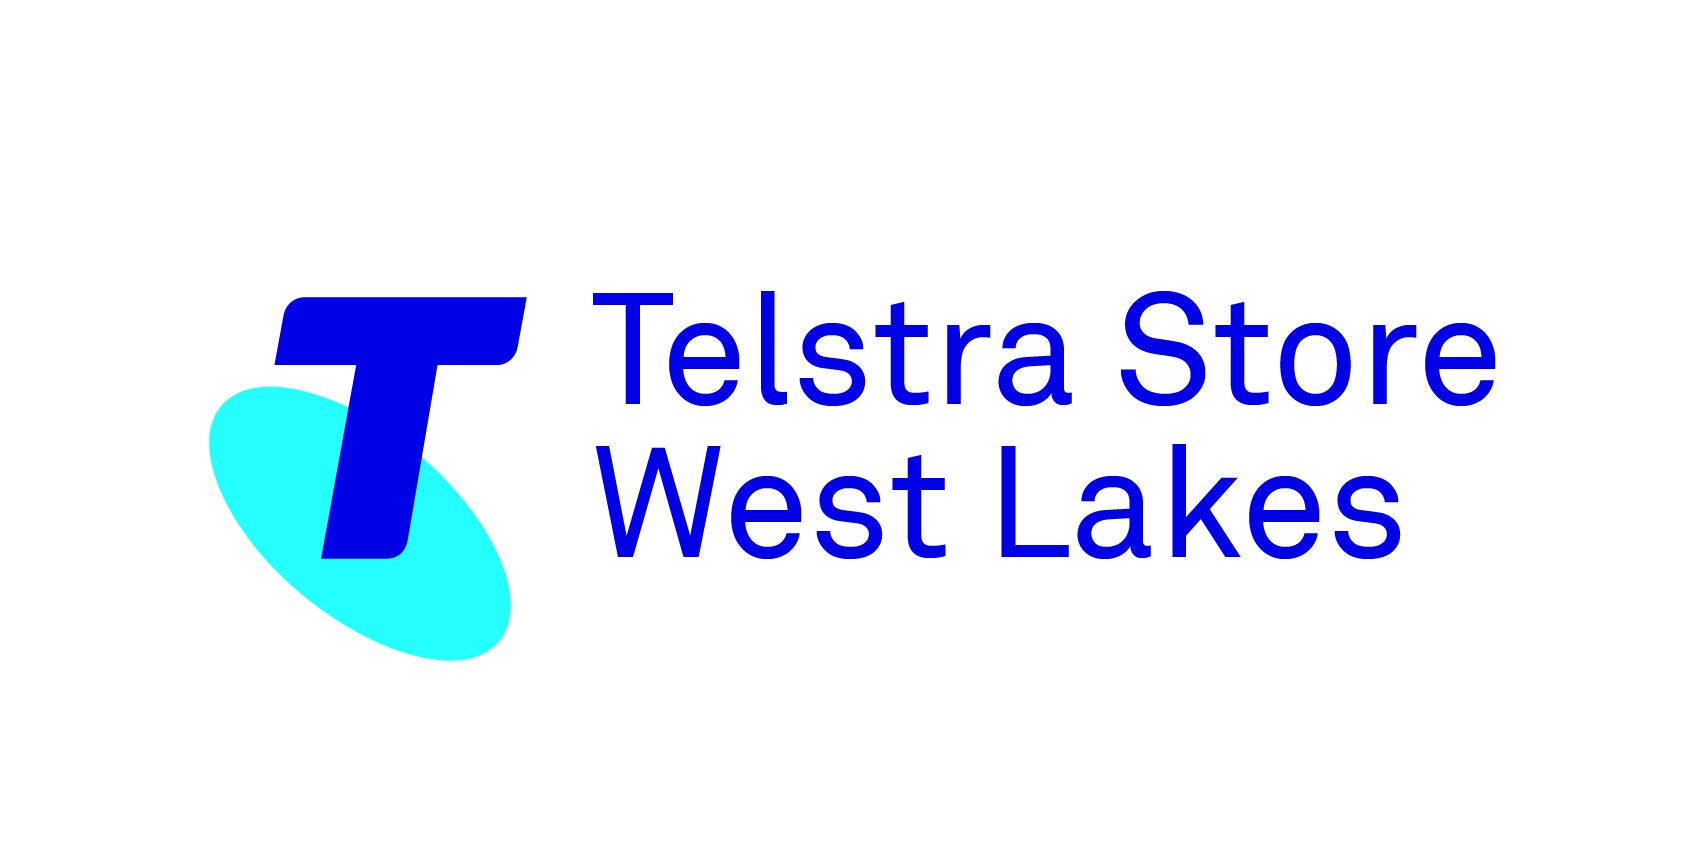 Telstra Store West Lakes